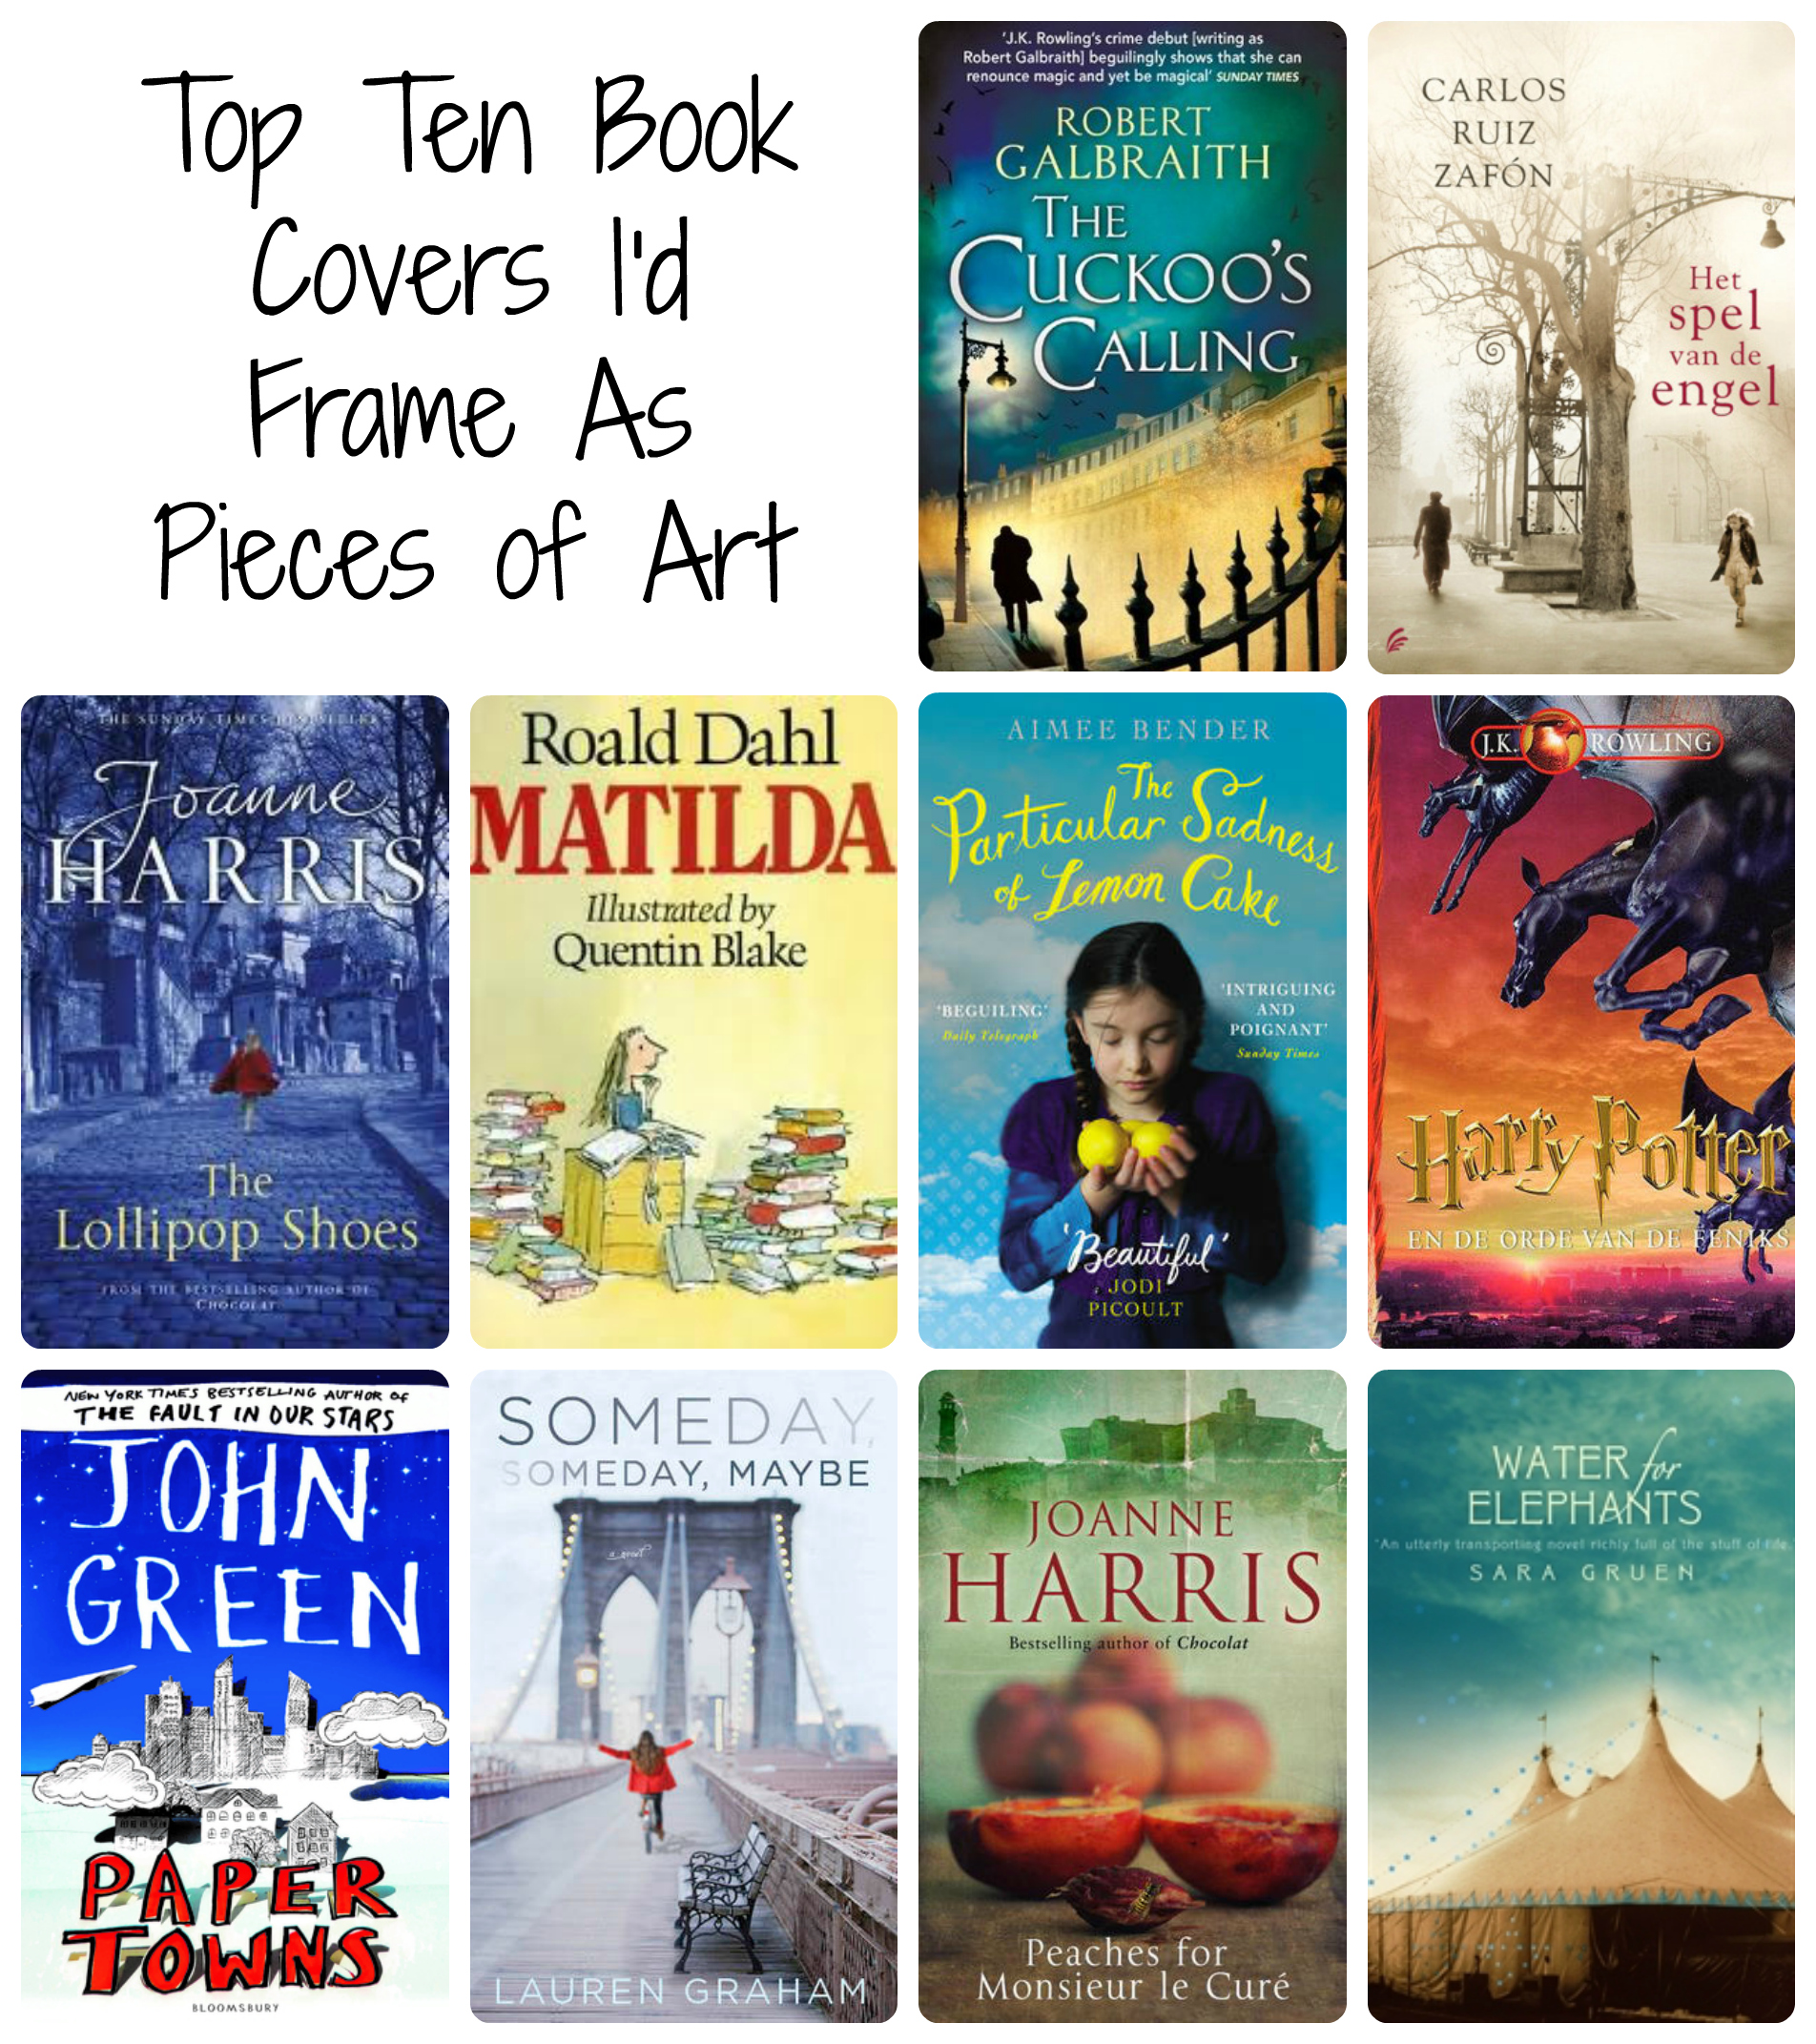 Collage Style Book Cover ~ Top ten book covers i d frame as pieces of art books